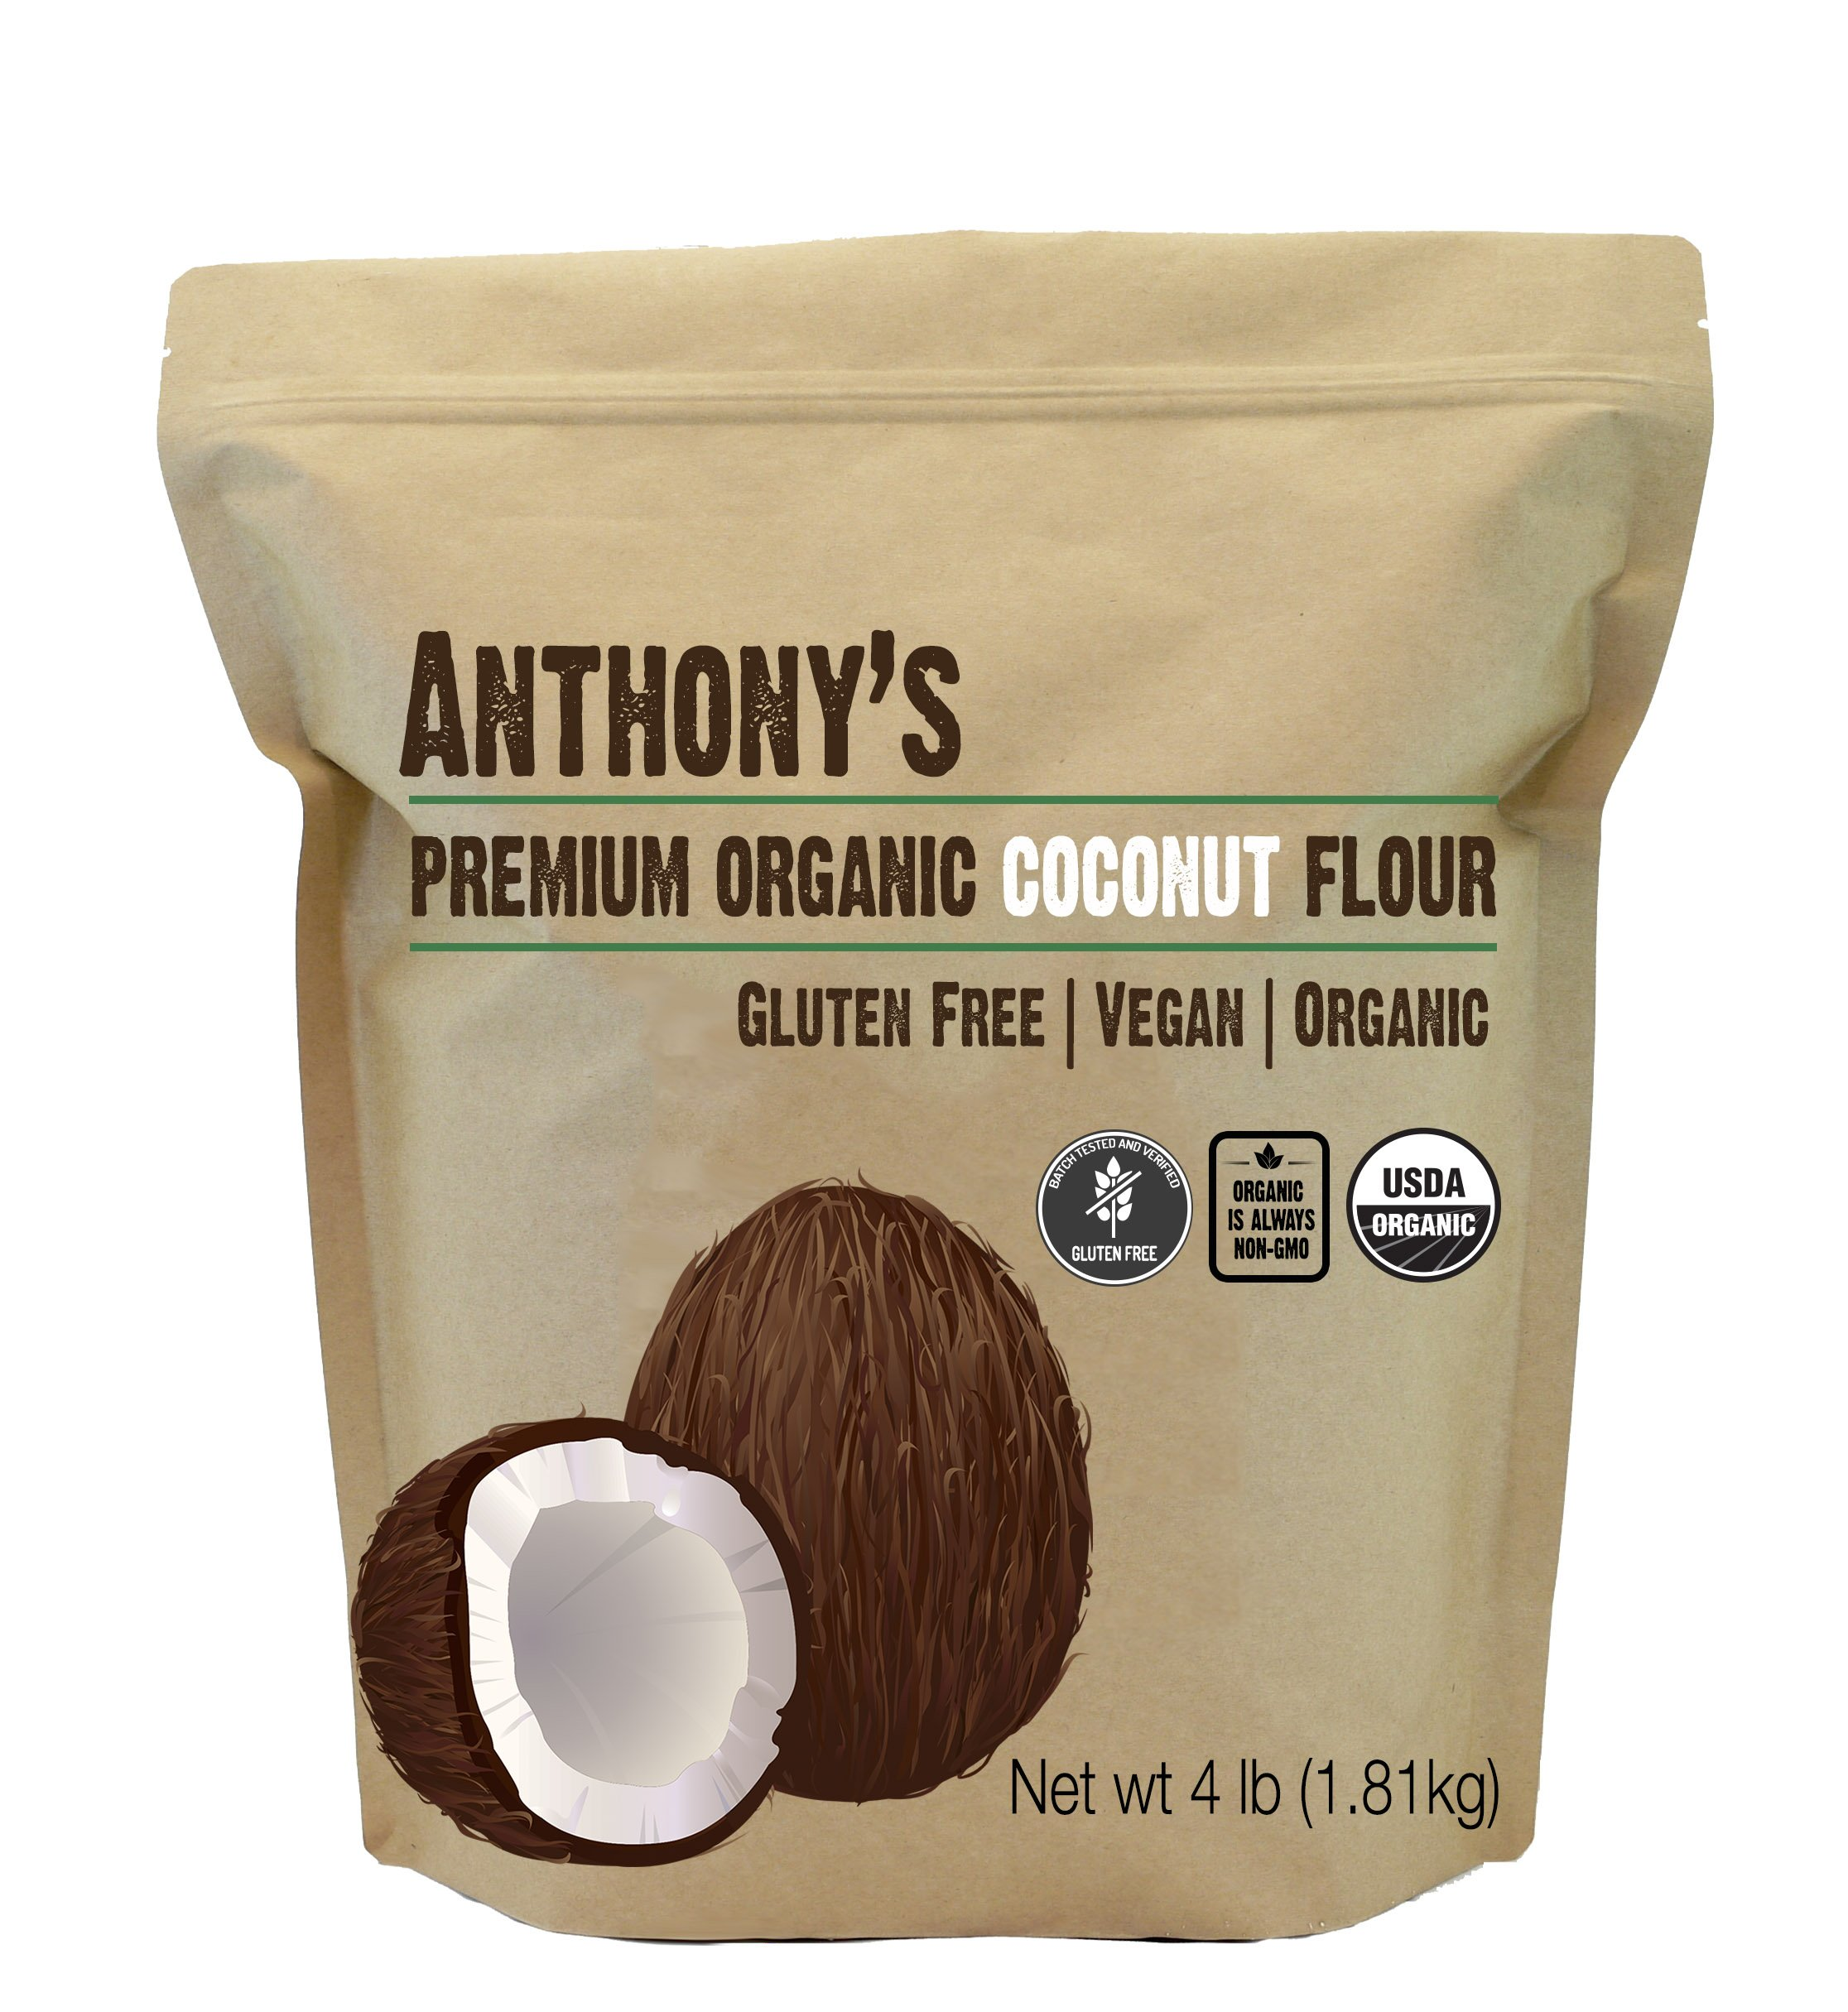 Organic Coconut Flour (4 lb) by Anthony's, Verified Gluten-Free, Non-GMO